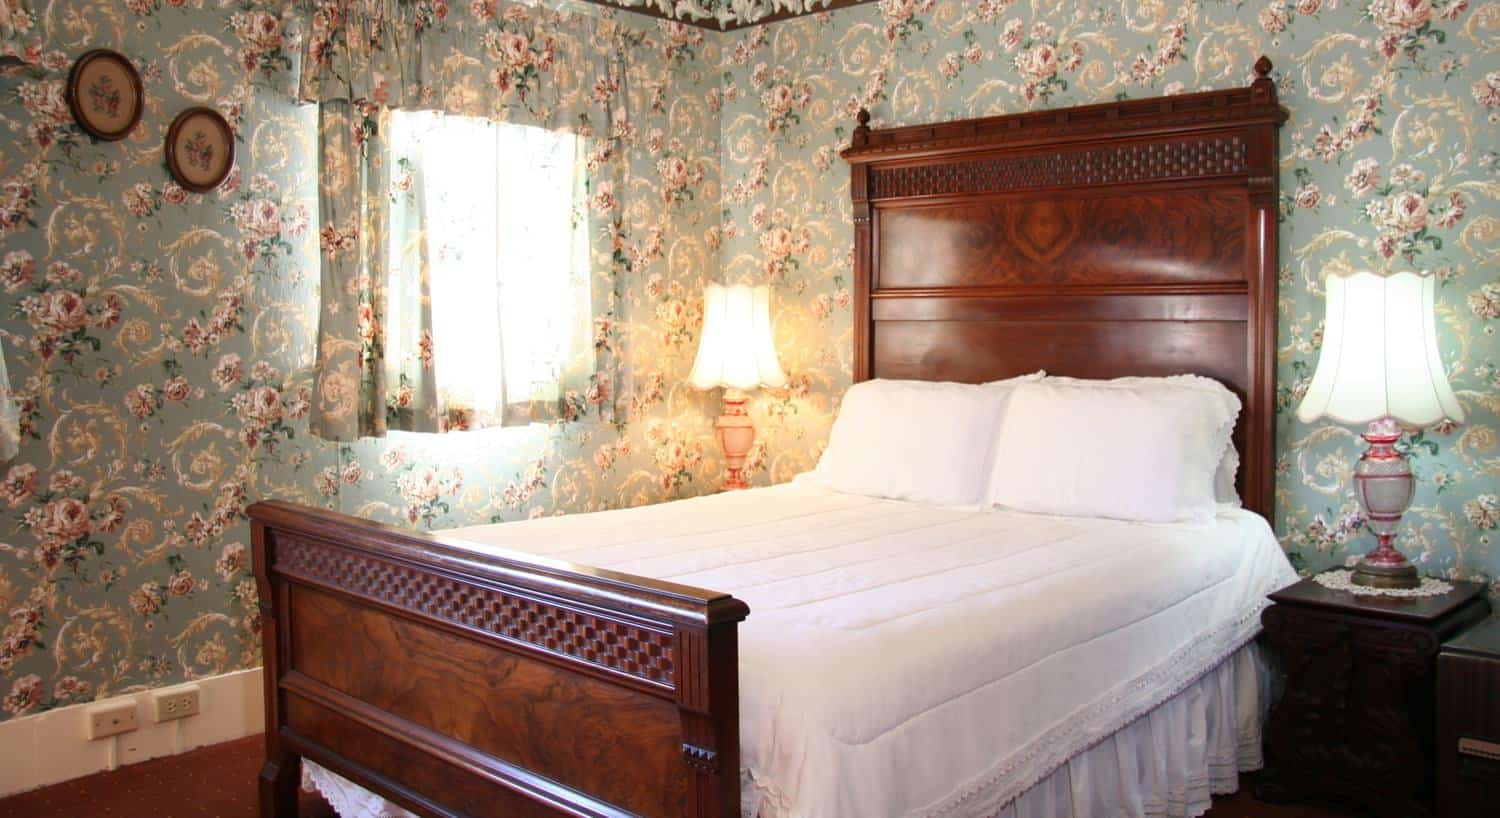 Mahogany guest room with light blue floral walls, window, carved bed with tall headboard, nightstands and lamps